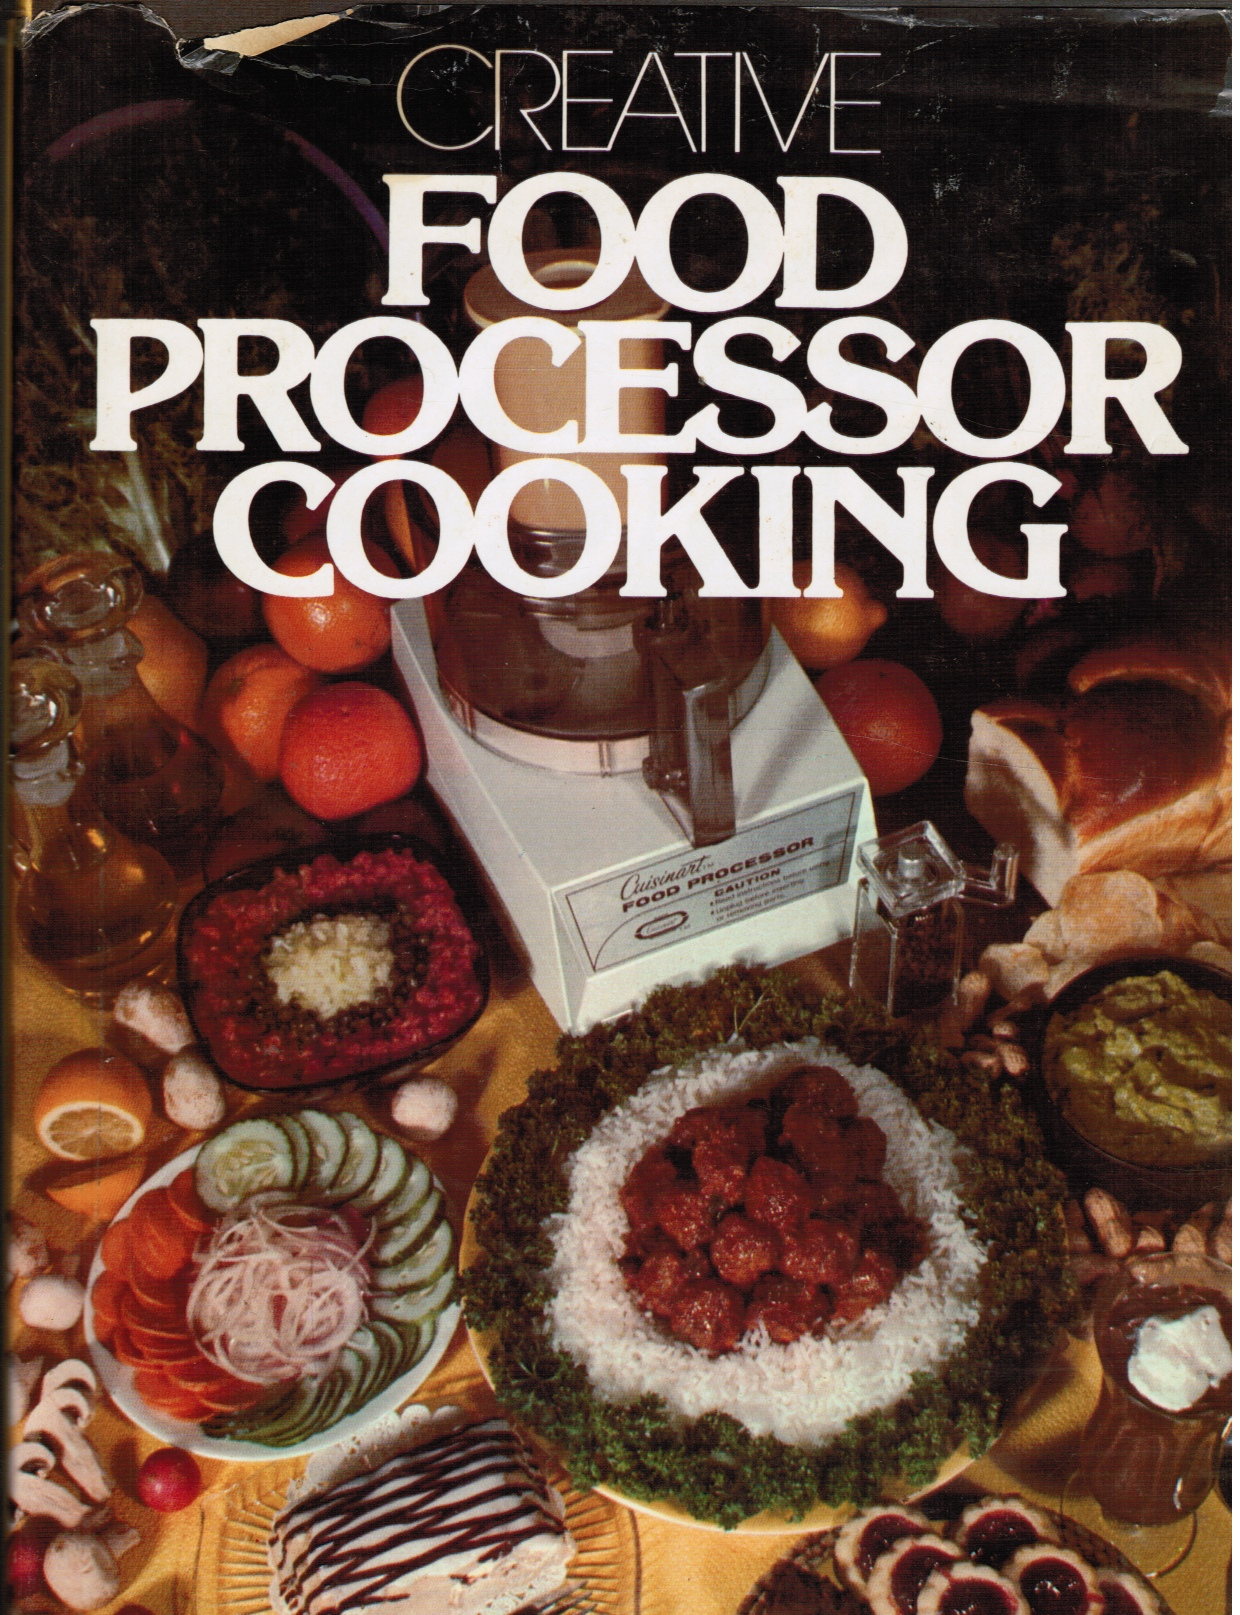 Image for Creative Food Processor Cooking